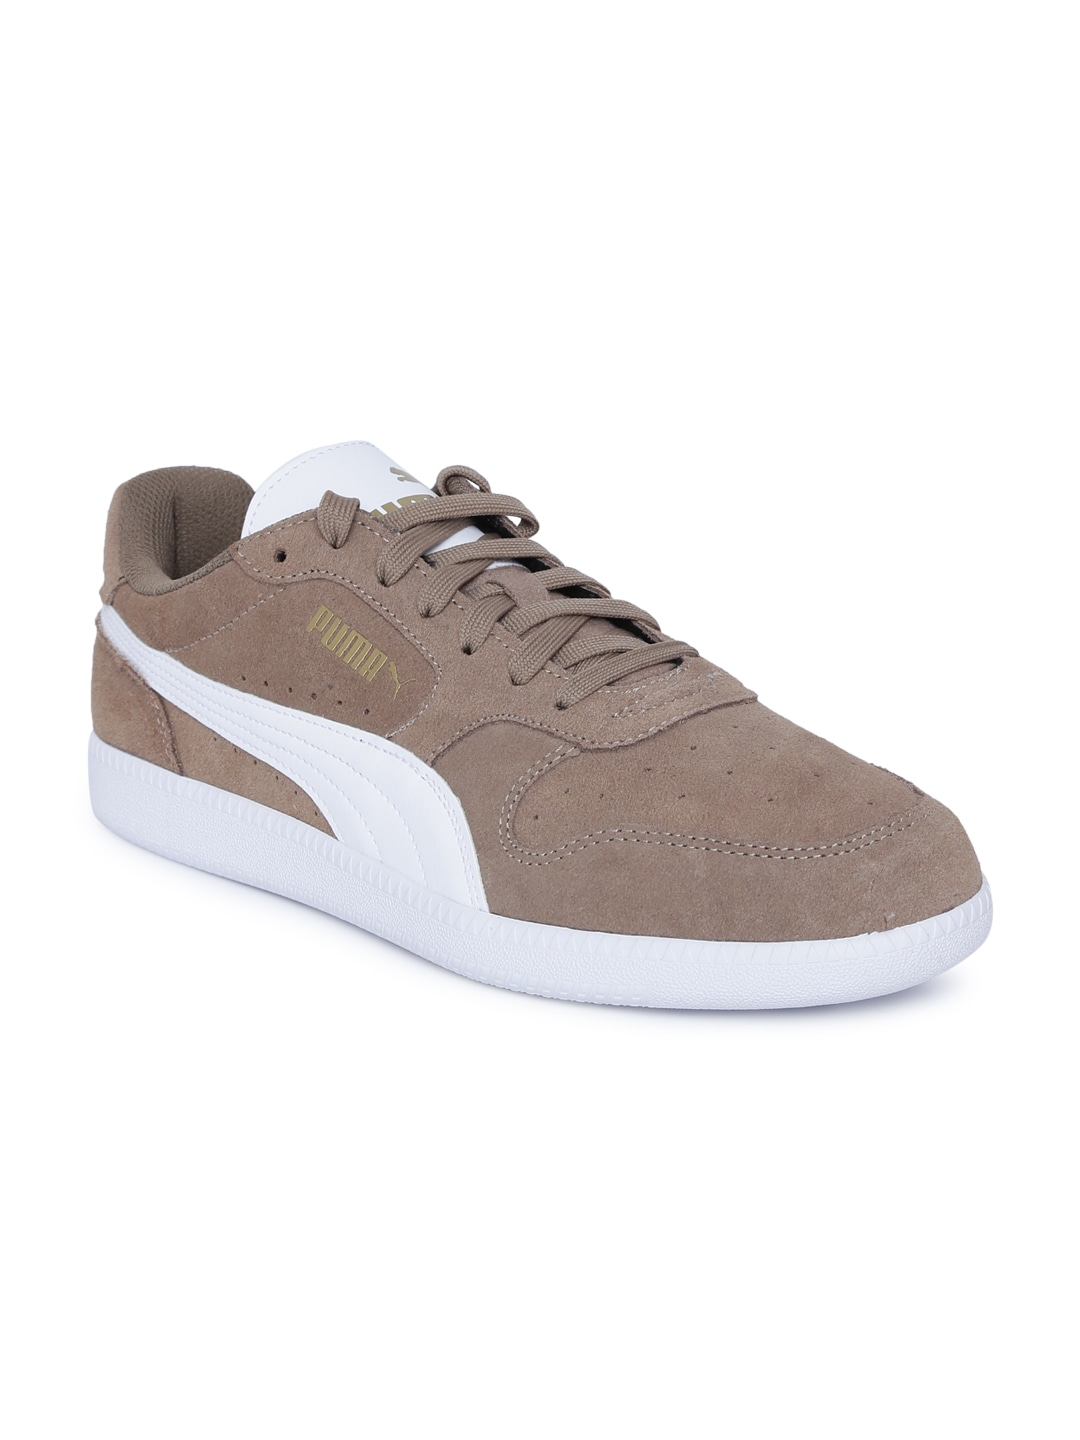 Puma Sneakers Shoes - Buy Puma Sneakers Shoes Online in India c88e42af9